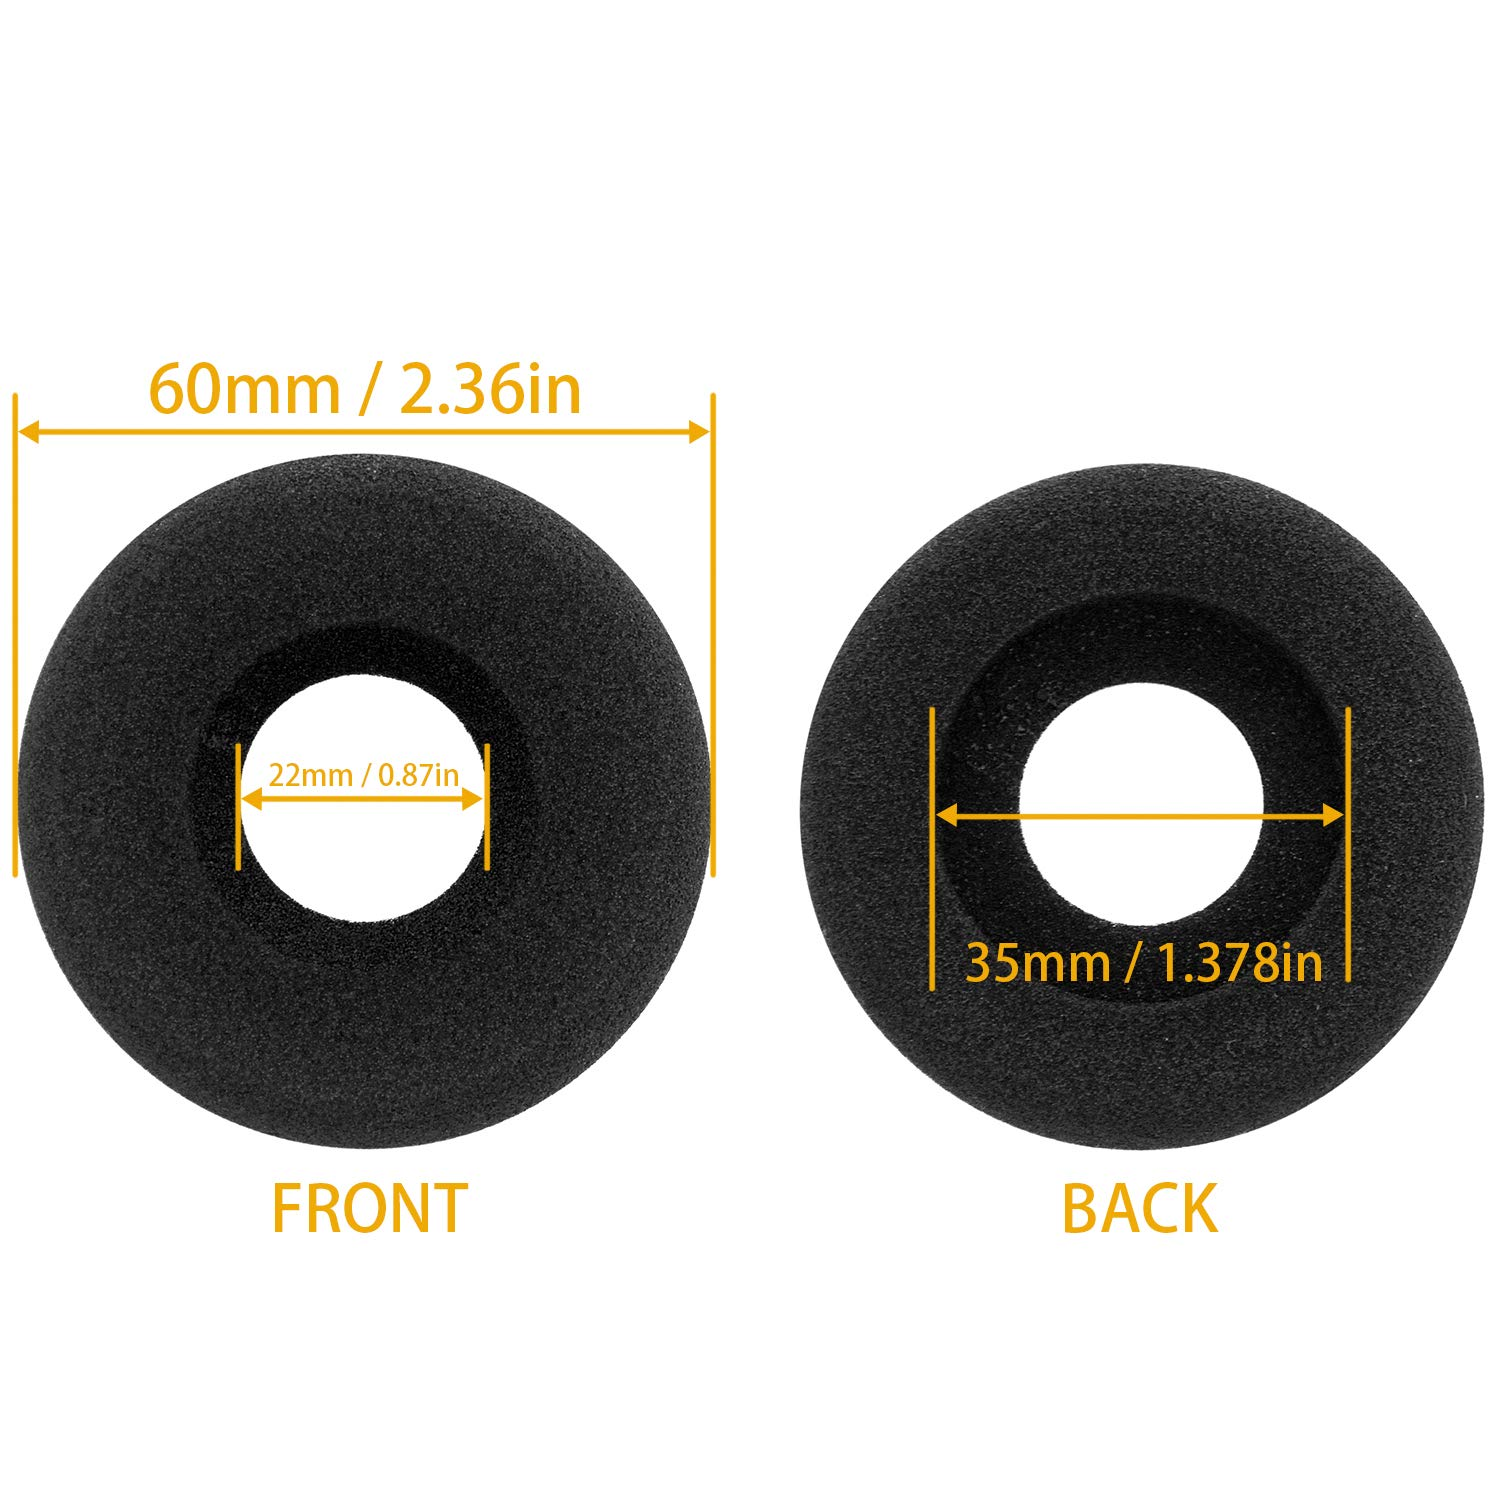 Ear Cushions Foam Doughnut Replacement for Plantronics Supra Plus Encore and Most Standard Size Office Telephone Headsets H251 H251N H261 H261N H351 H351N H361 H361N 10 Pack